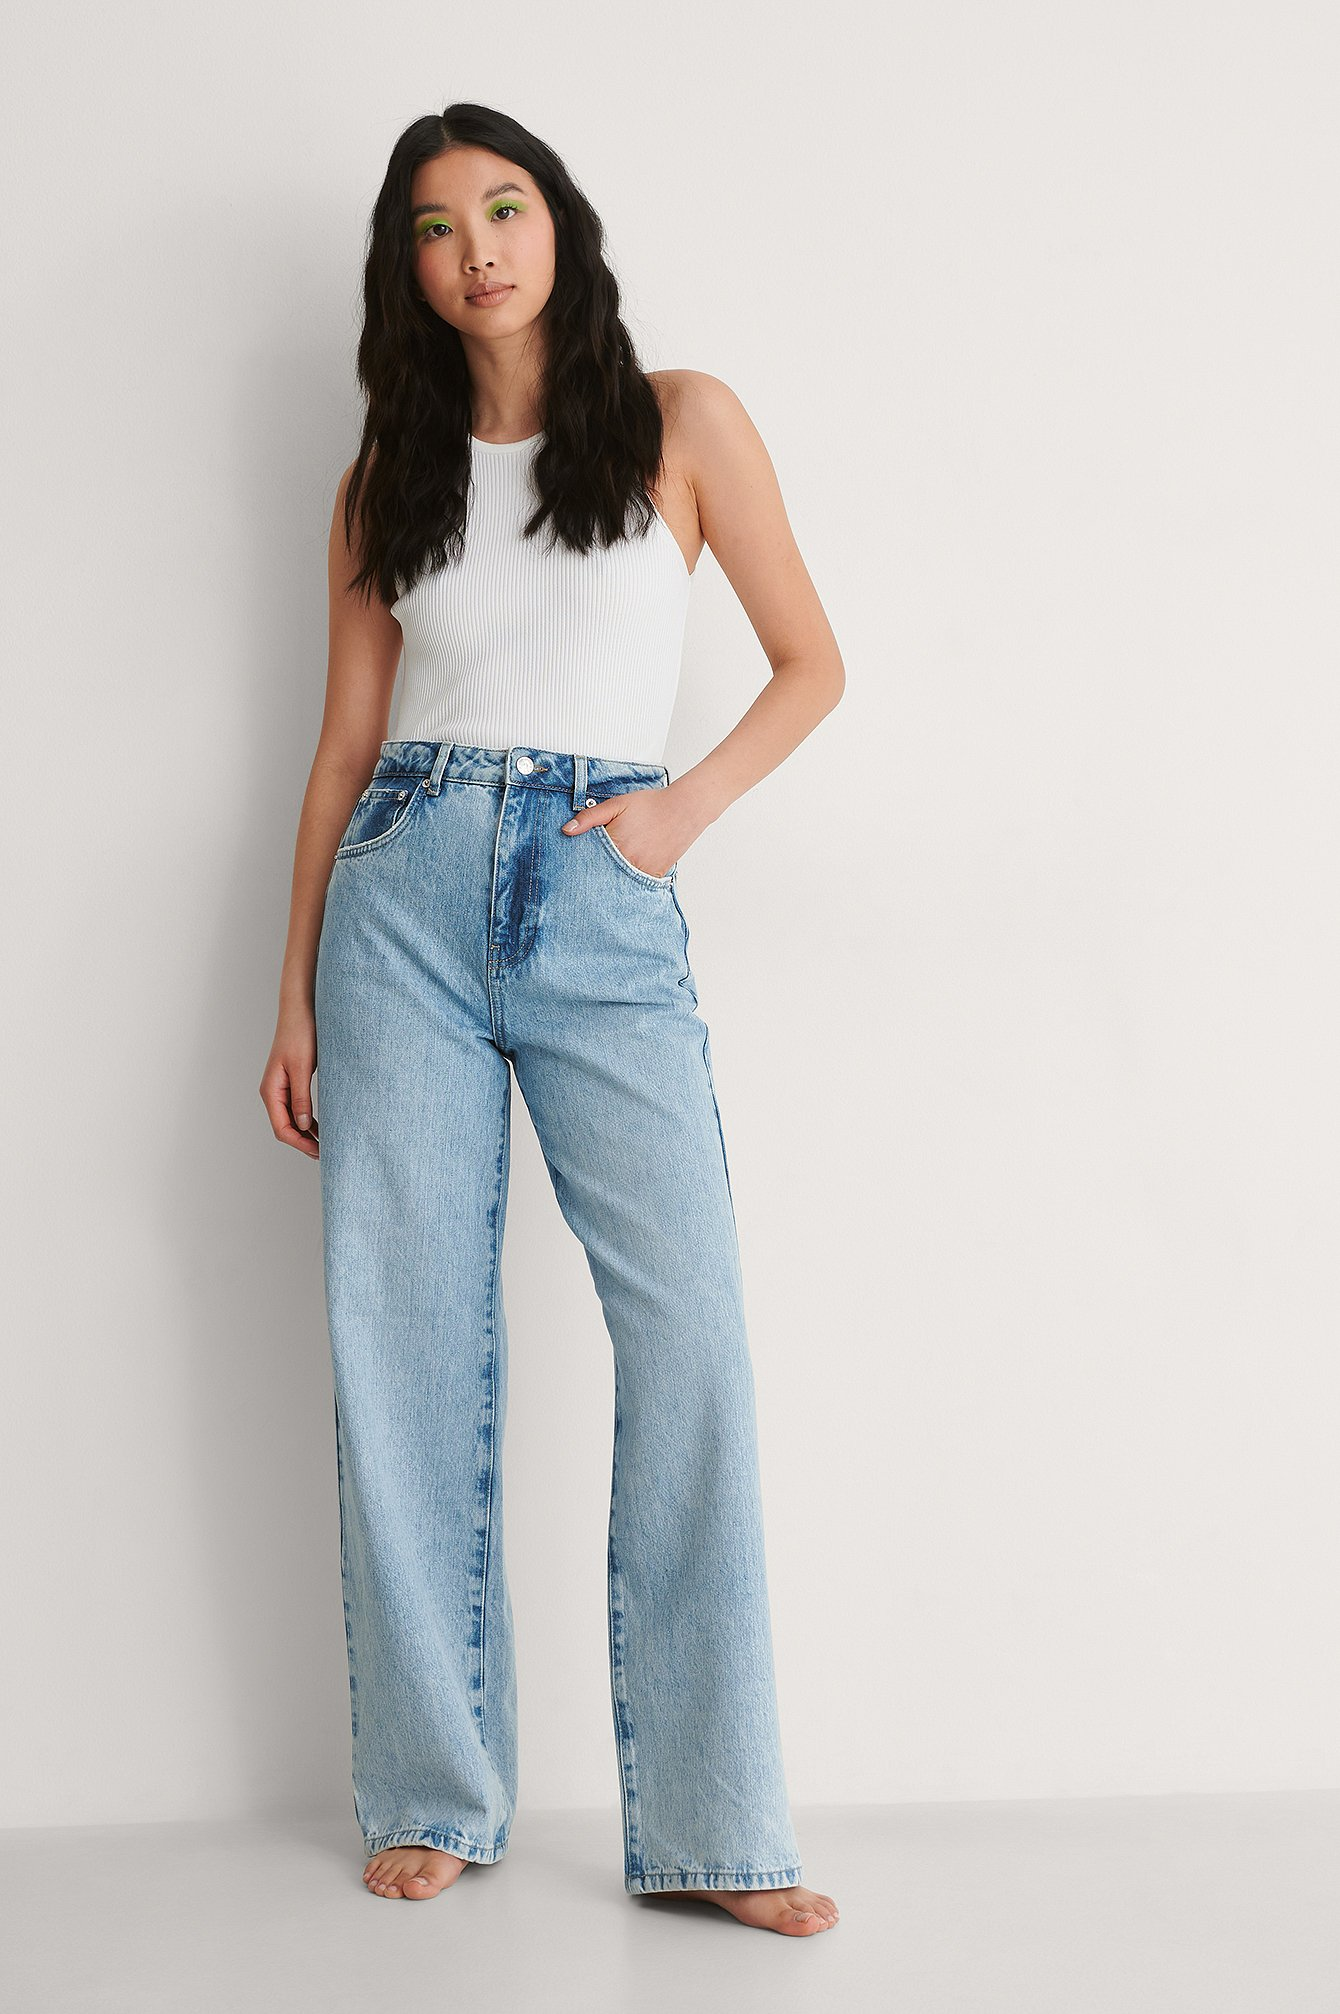 Light Blue Vintage Look Wide Leg High Waist Jeans